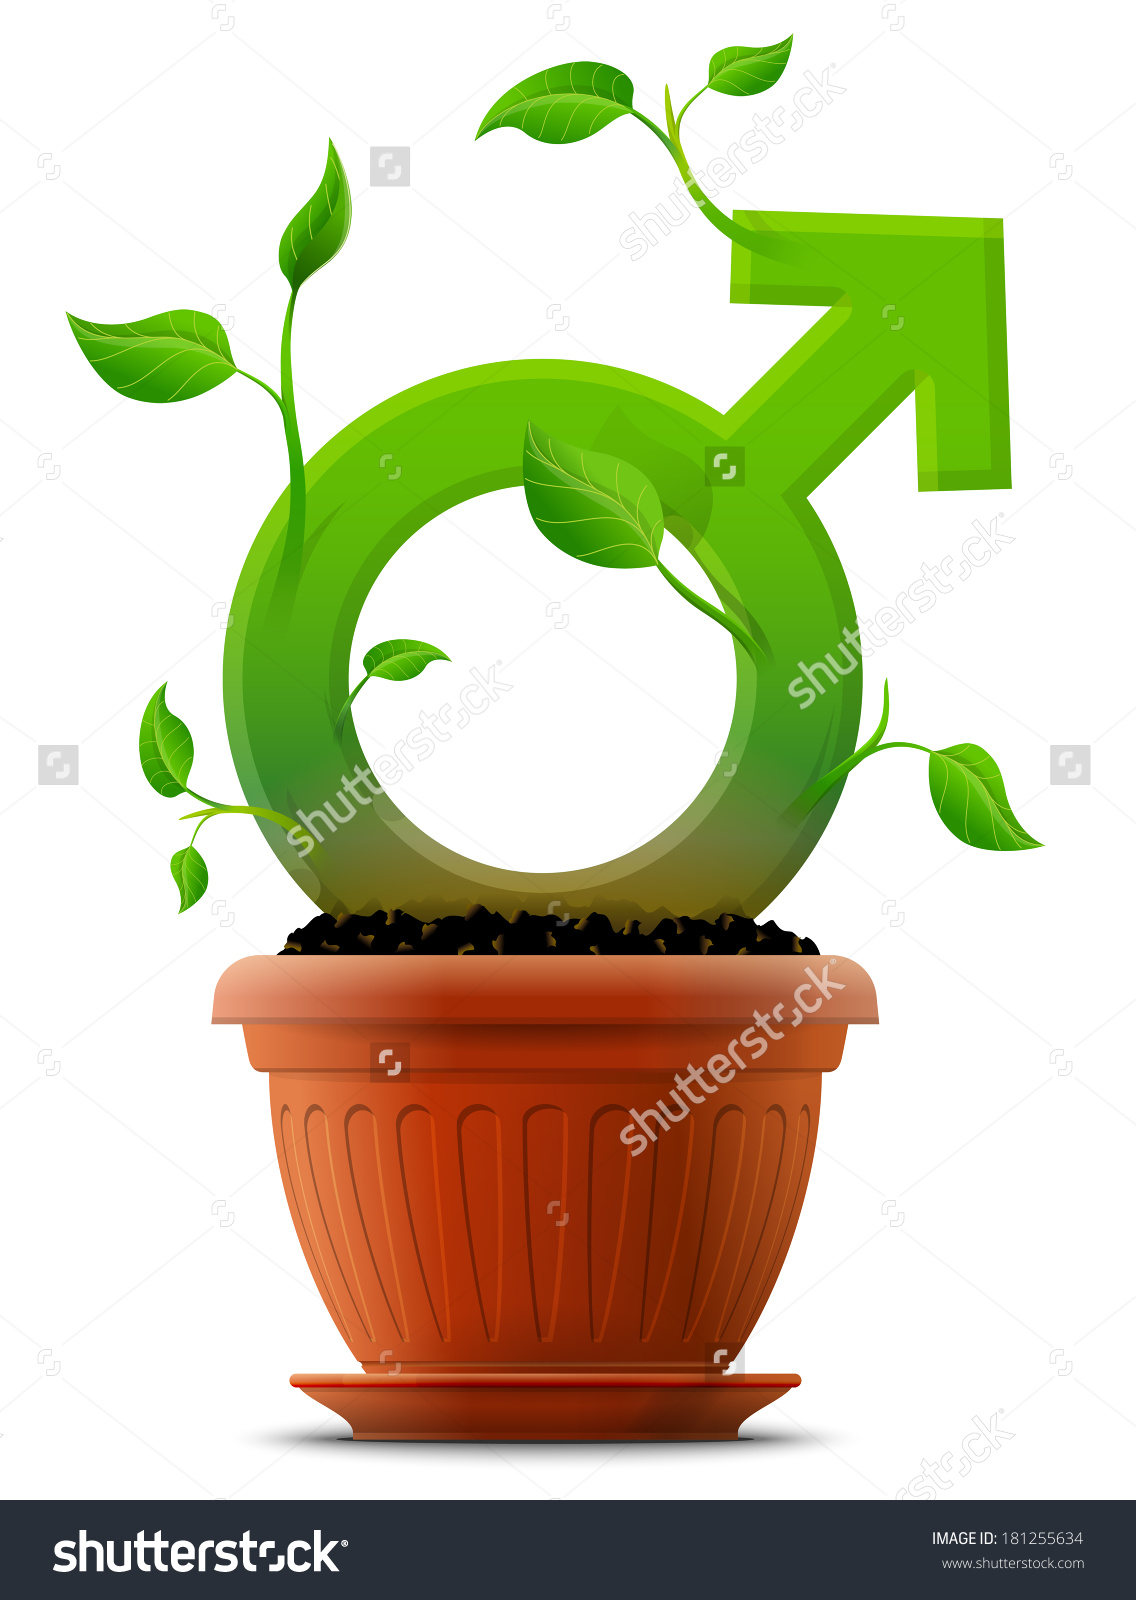 Growing Male Symbol Like Plant Leaves Stock Vector 181255634.